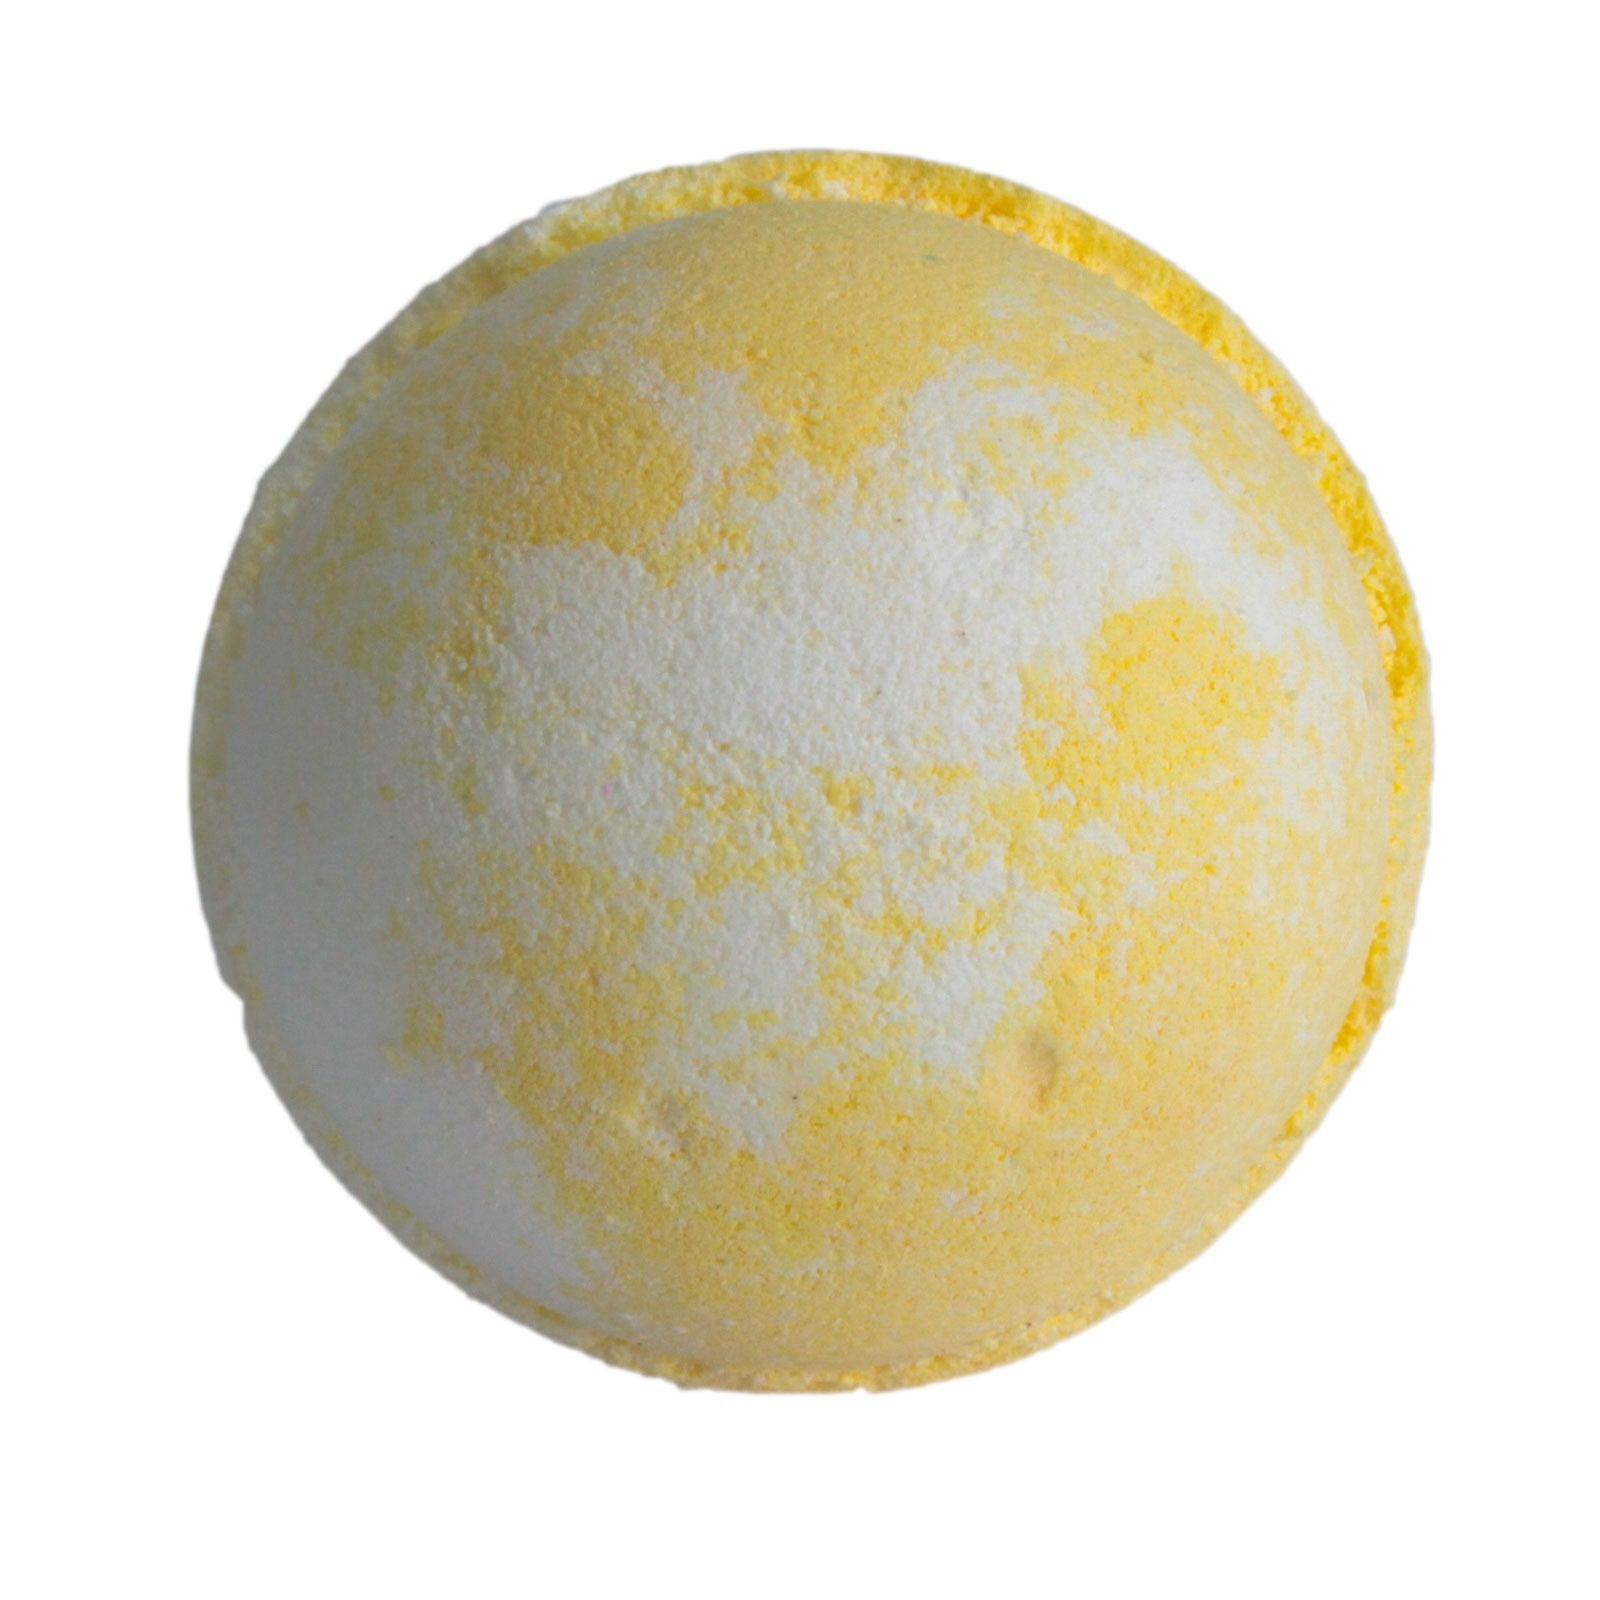 9e7dc9e6f4 Piña Colada Cocktail Bath Bombs (Set of 3) - Look4ward Store